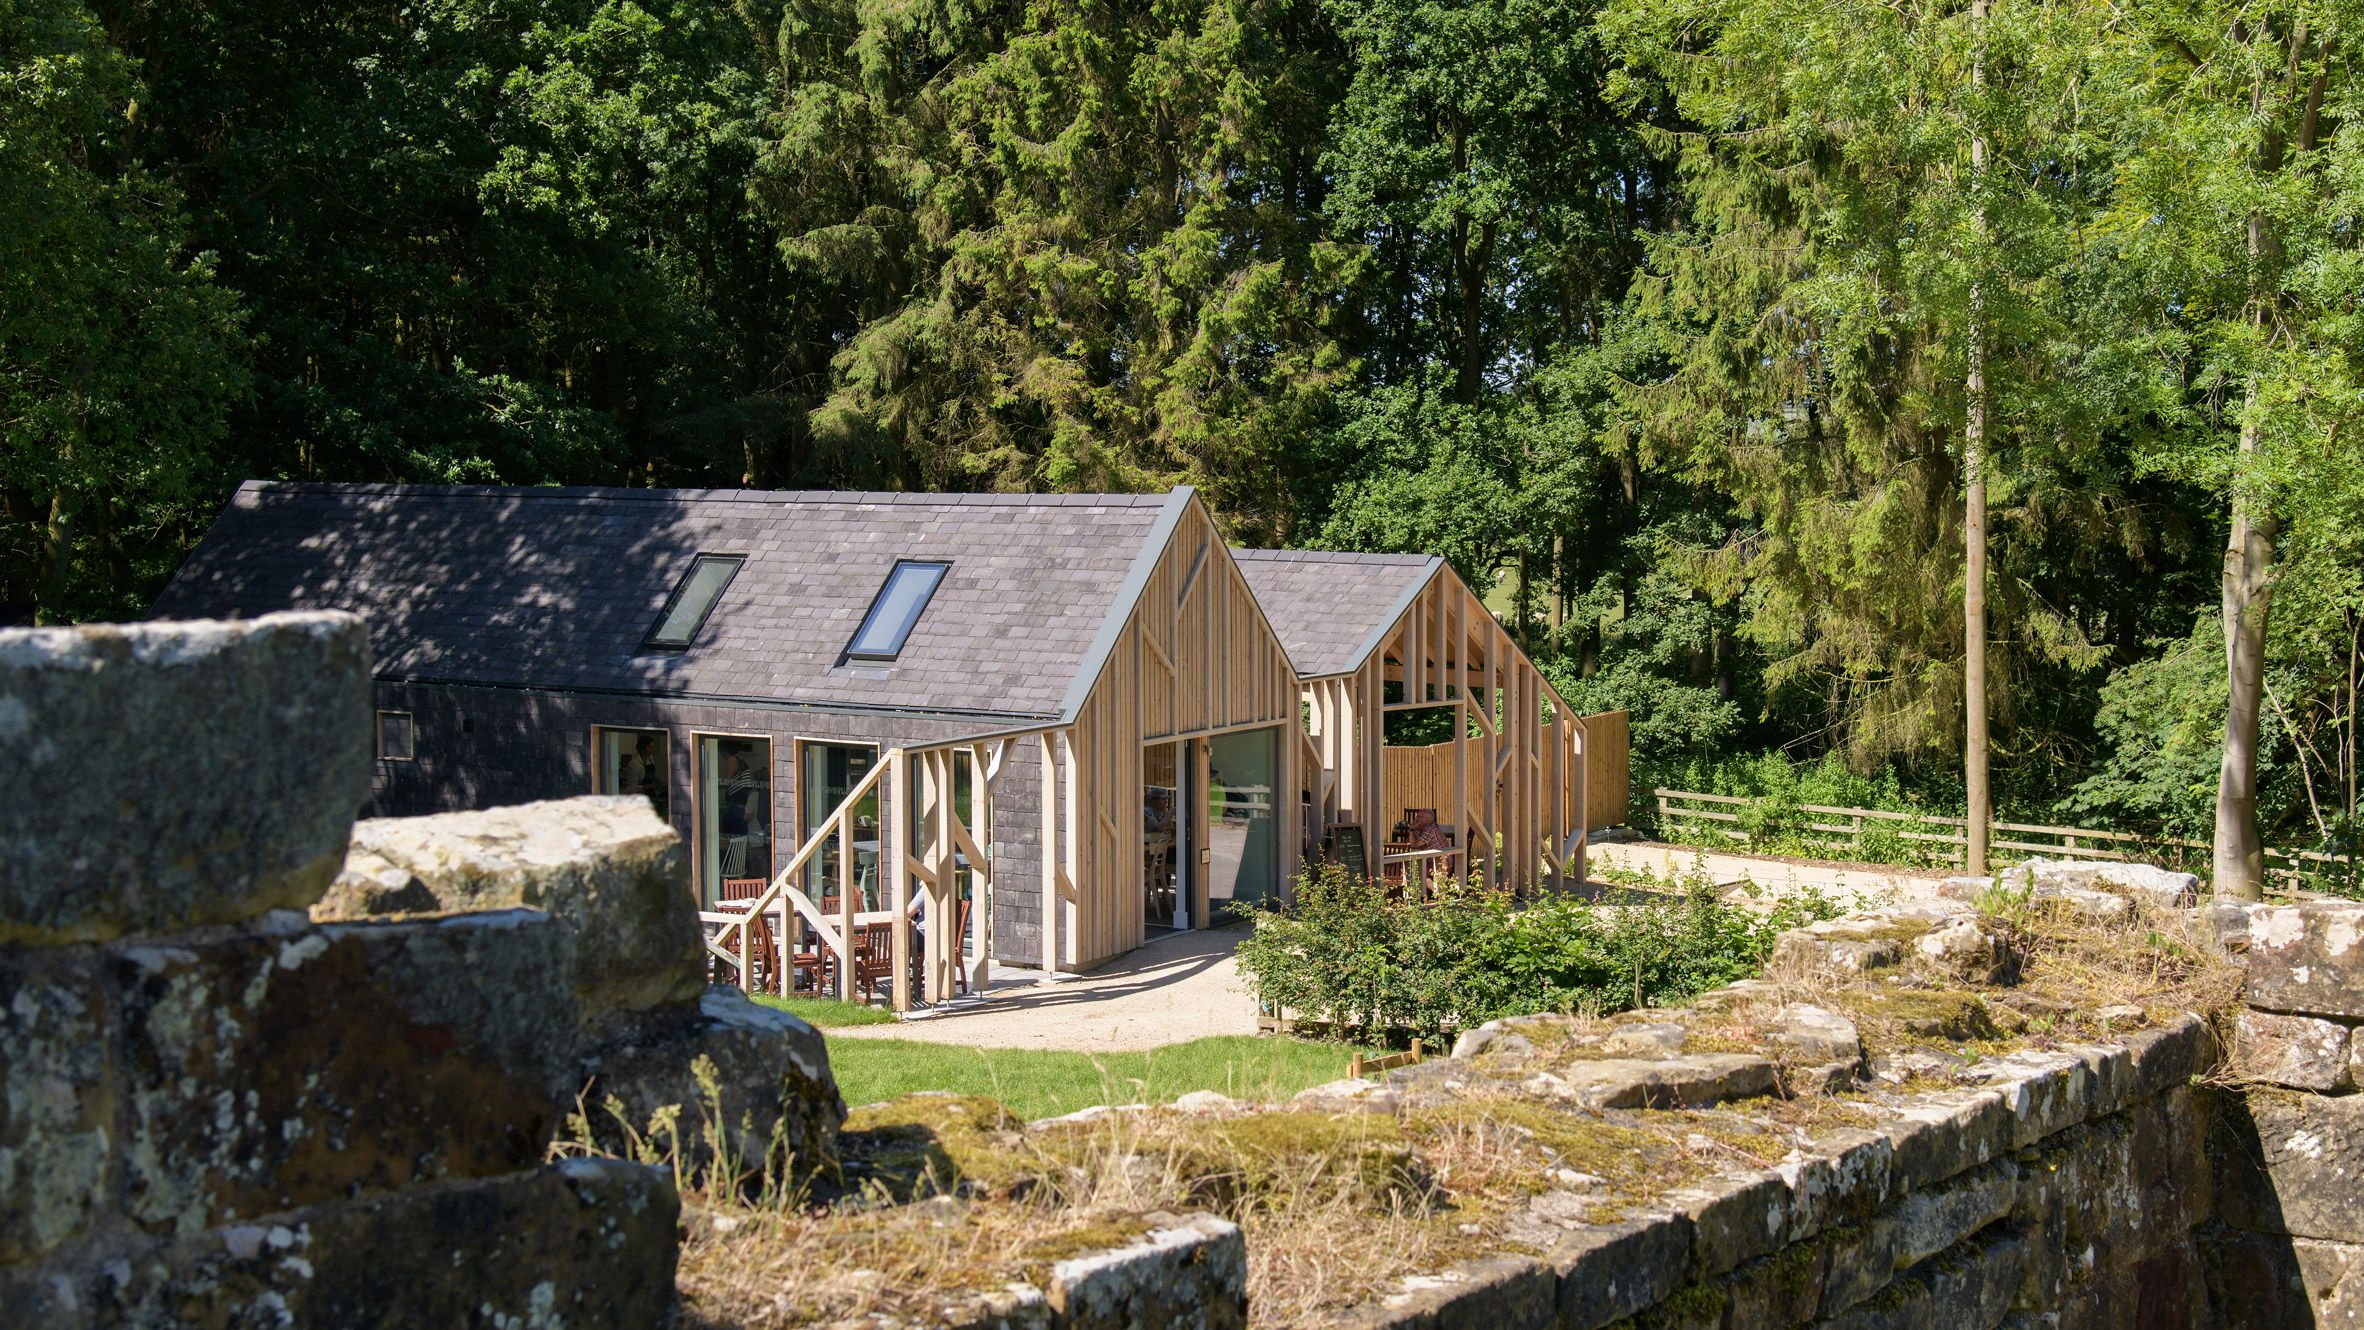 Gabled timber frames front this cafe in Yorkshire, which